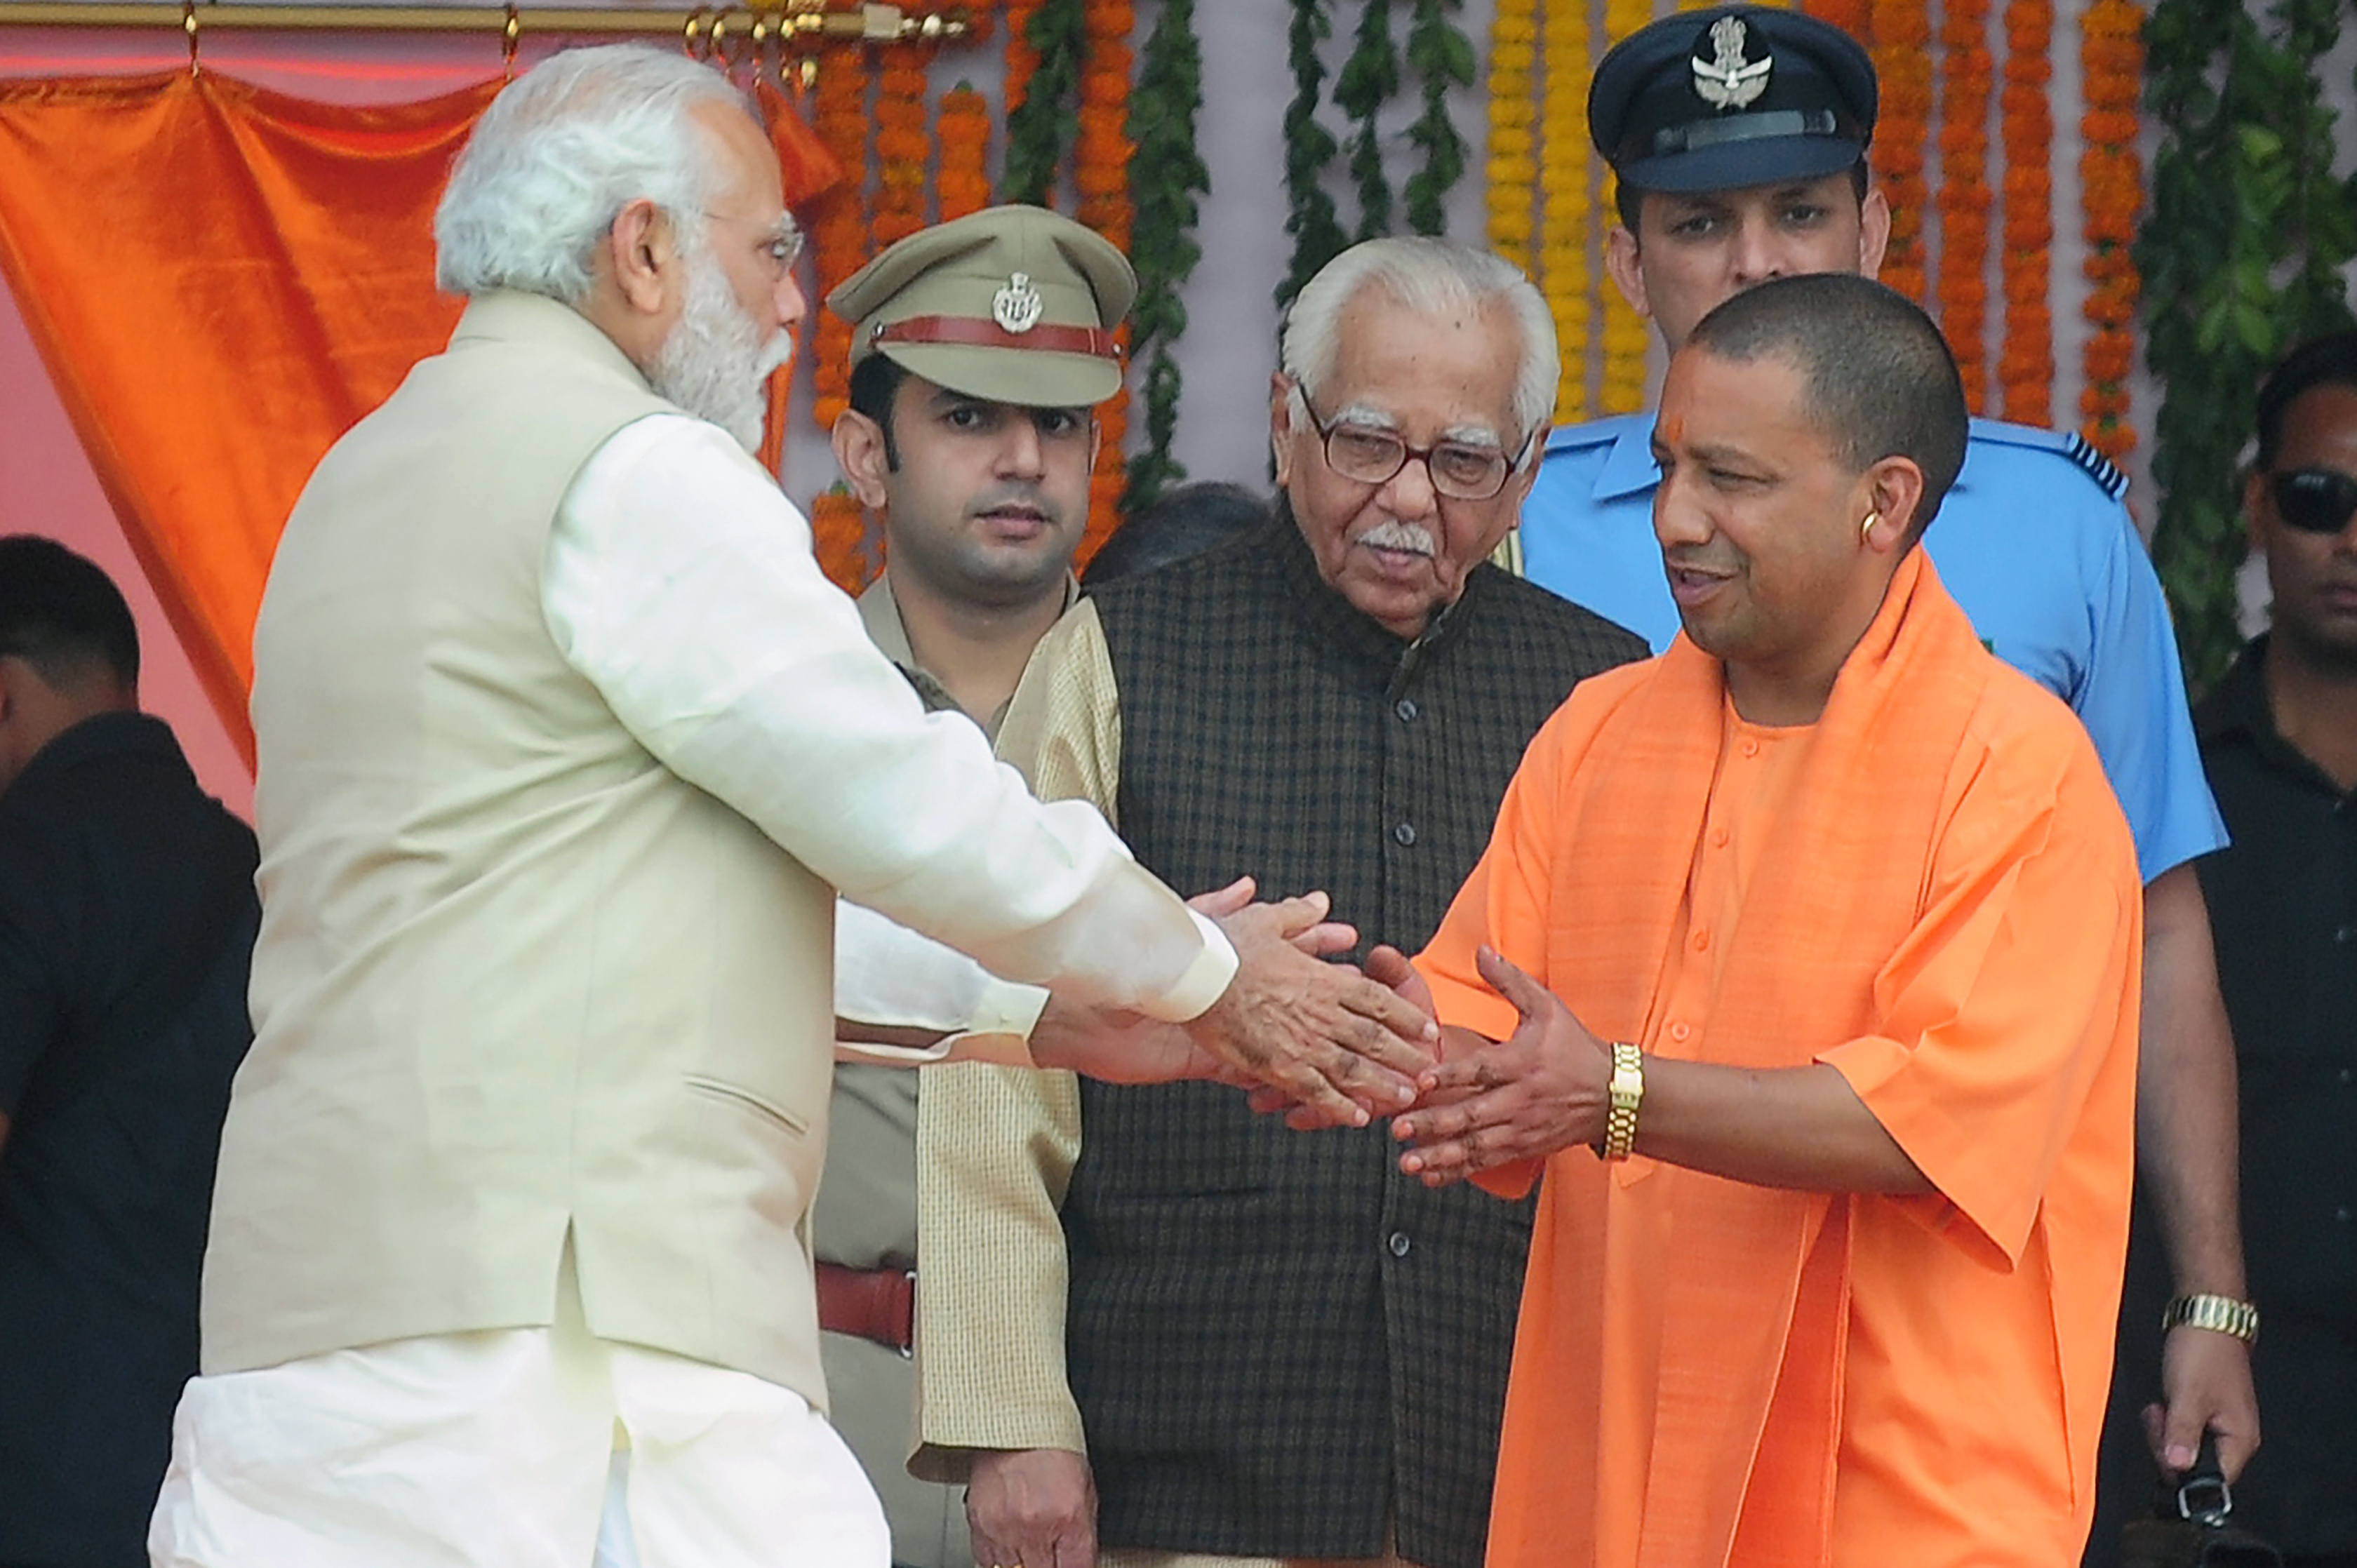 Indian Prime Minister Narendra Modi, left, greets Yogi Adityanath, chief minister of Uttar Pradesh state, at his swearing-in ceremony in Lucknow, India, on March 19, 2017